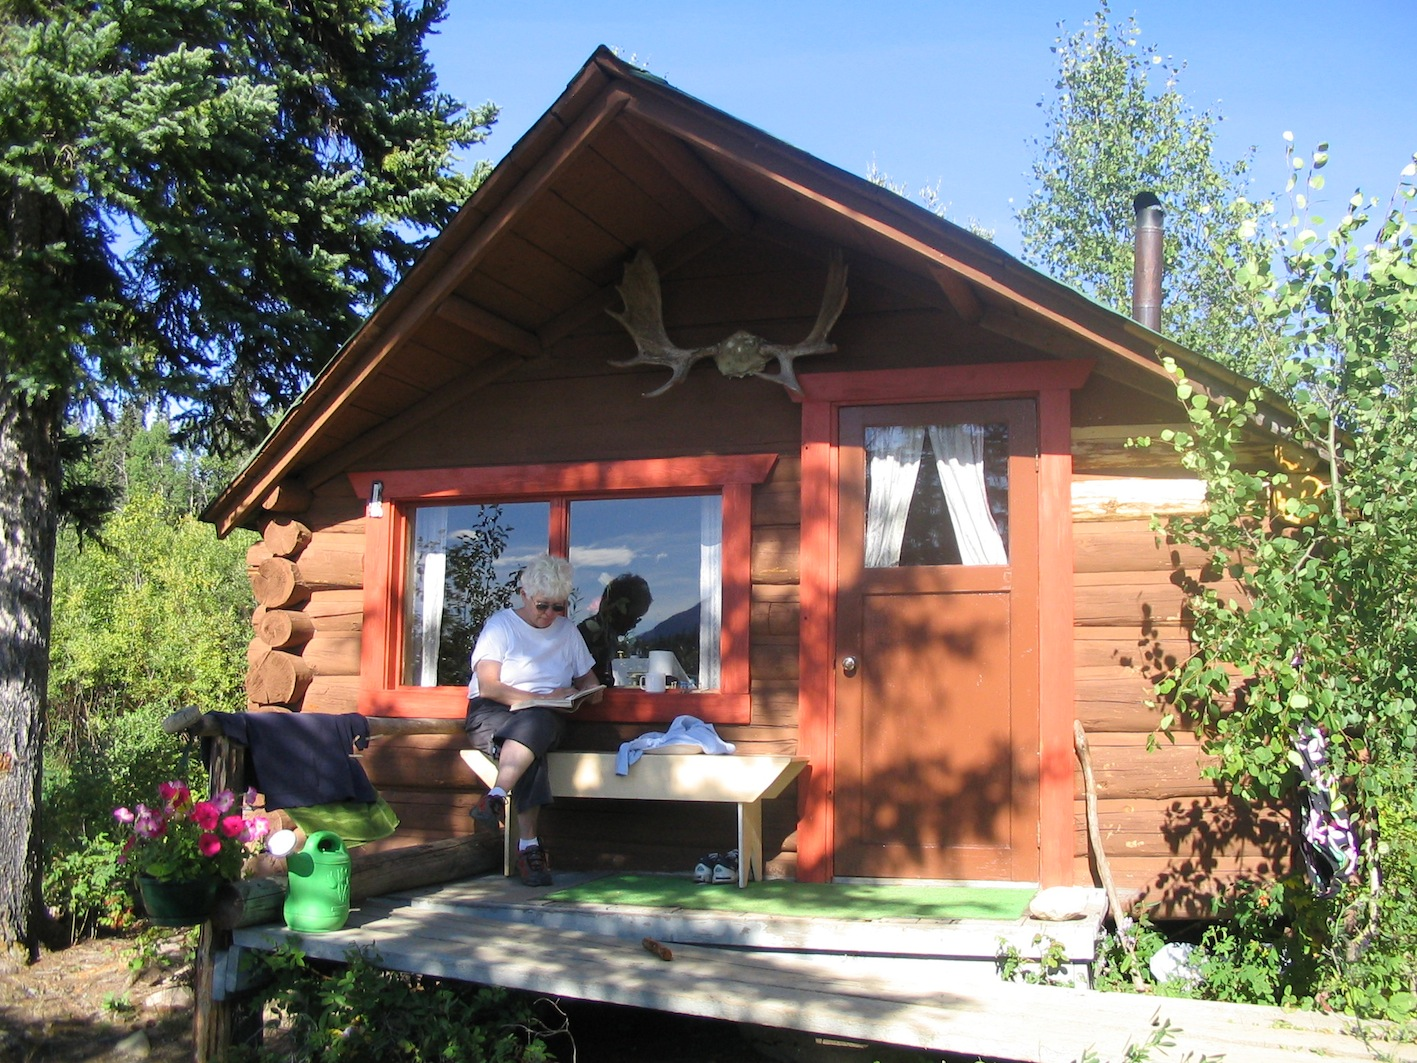 private sale: babine lake, smithers, british columbia - propertyguys